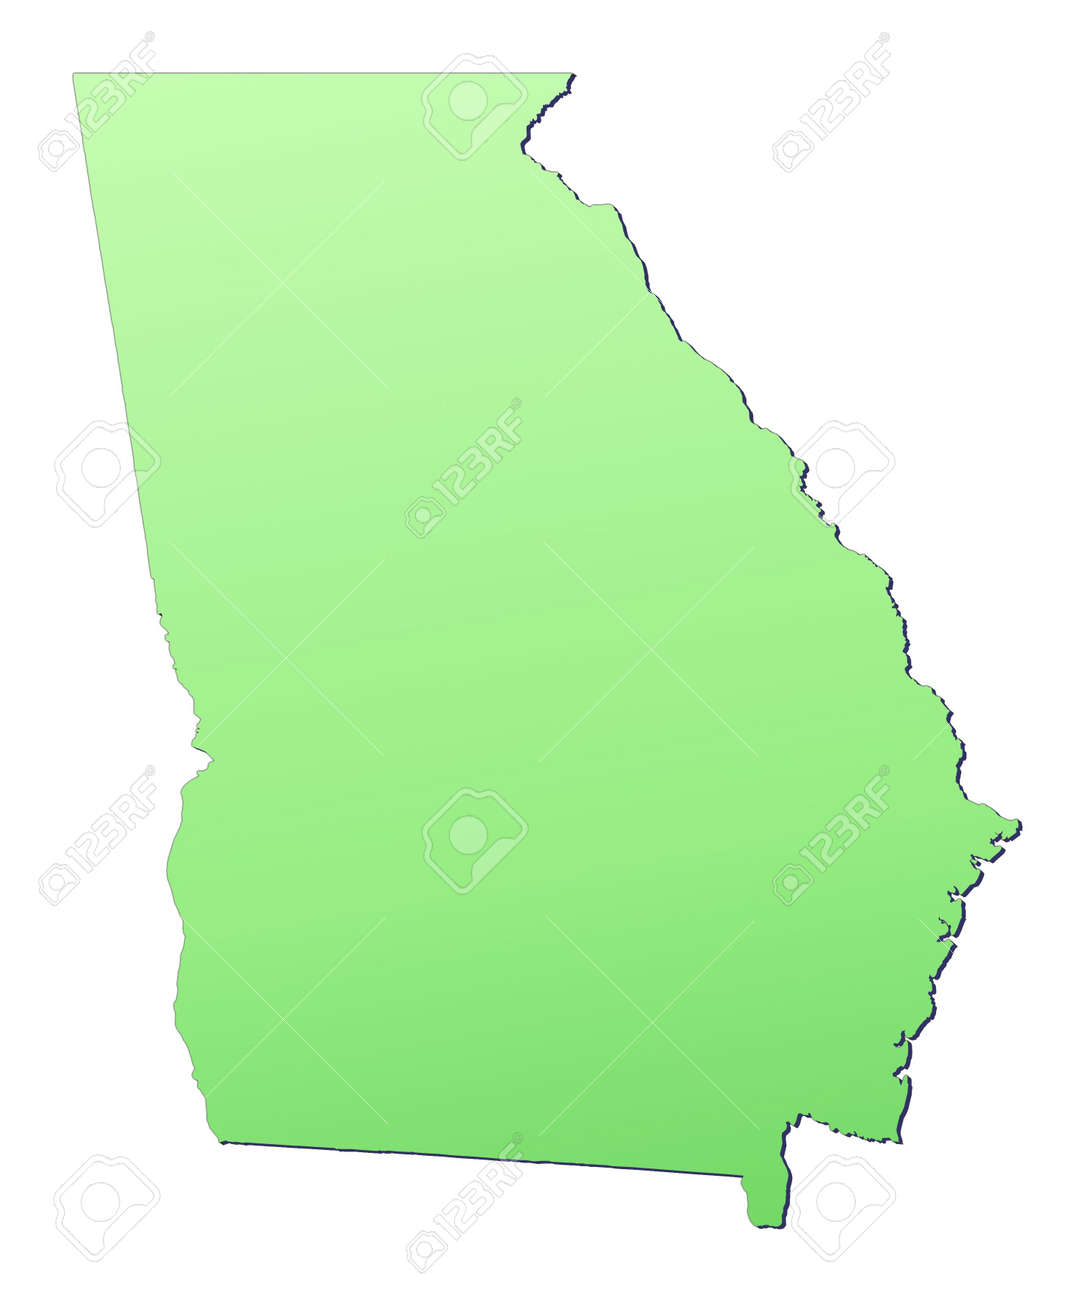 Georgia USA Map Filled With Light Green Gradient High - Free high resolution us map